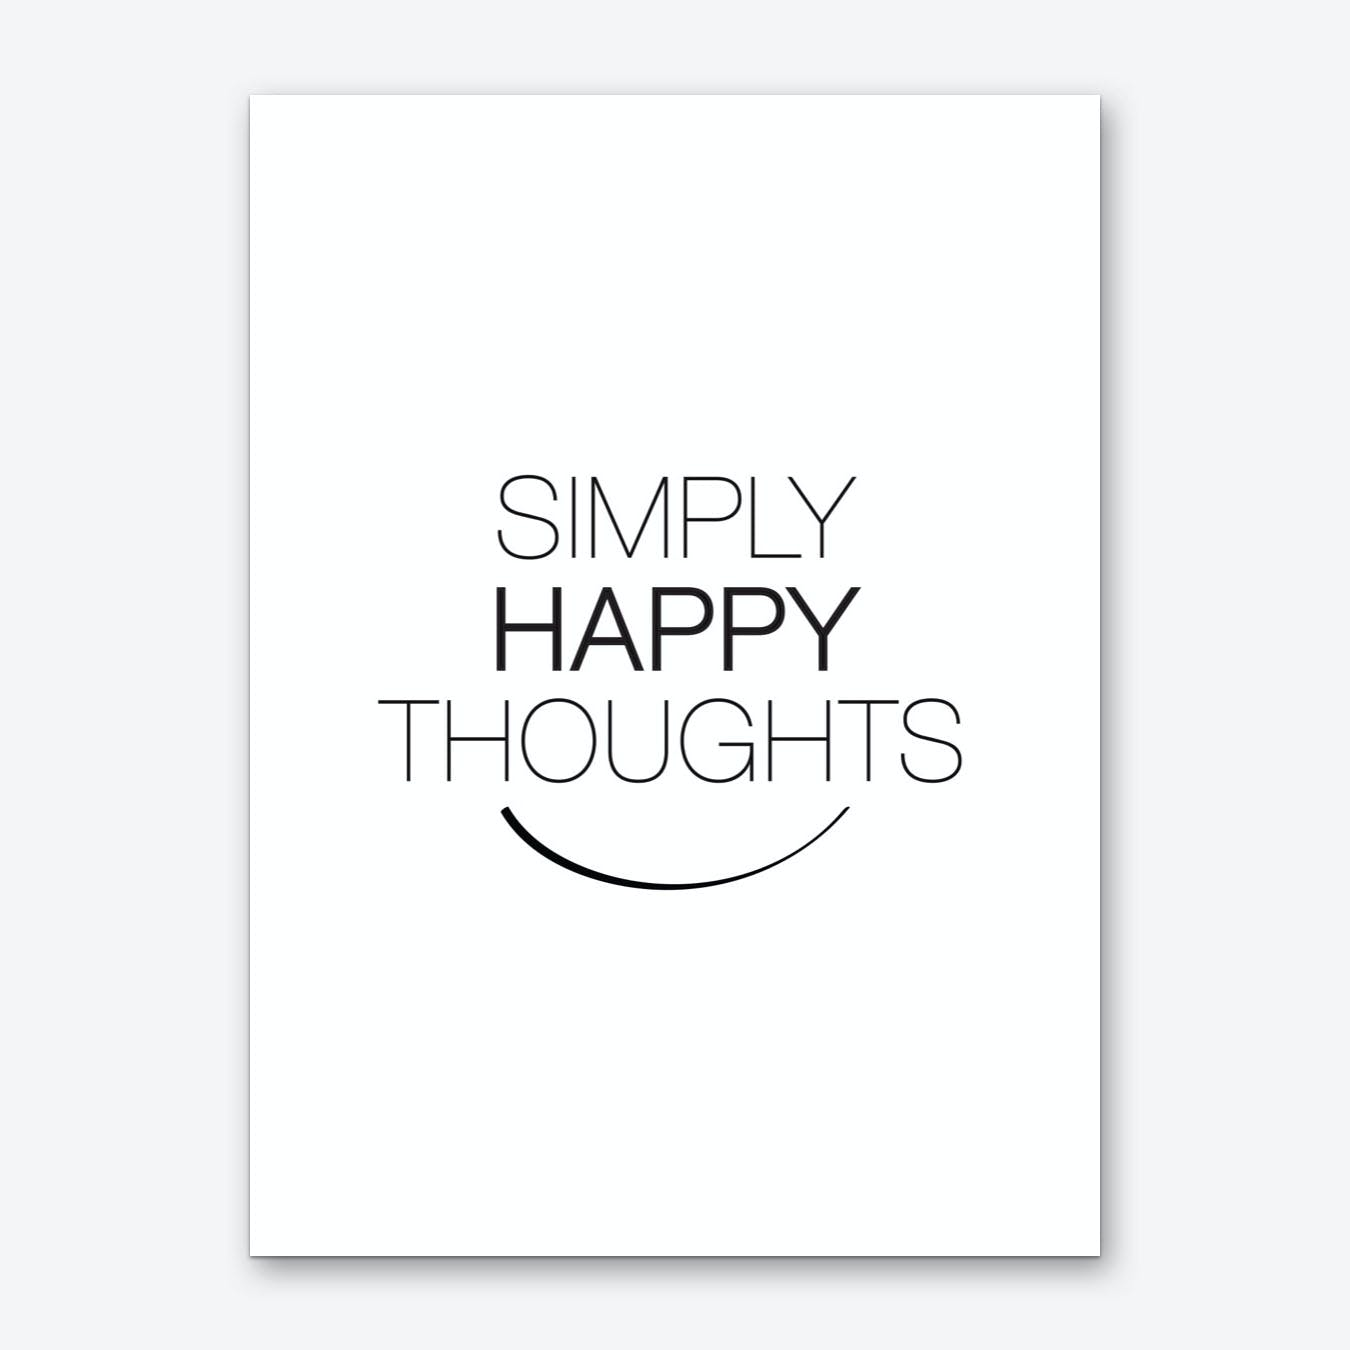 Simply Happy Thoughts Art Print